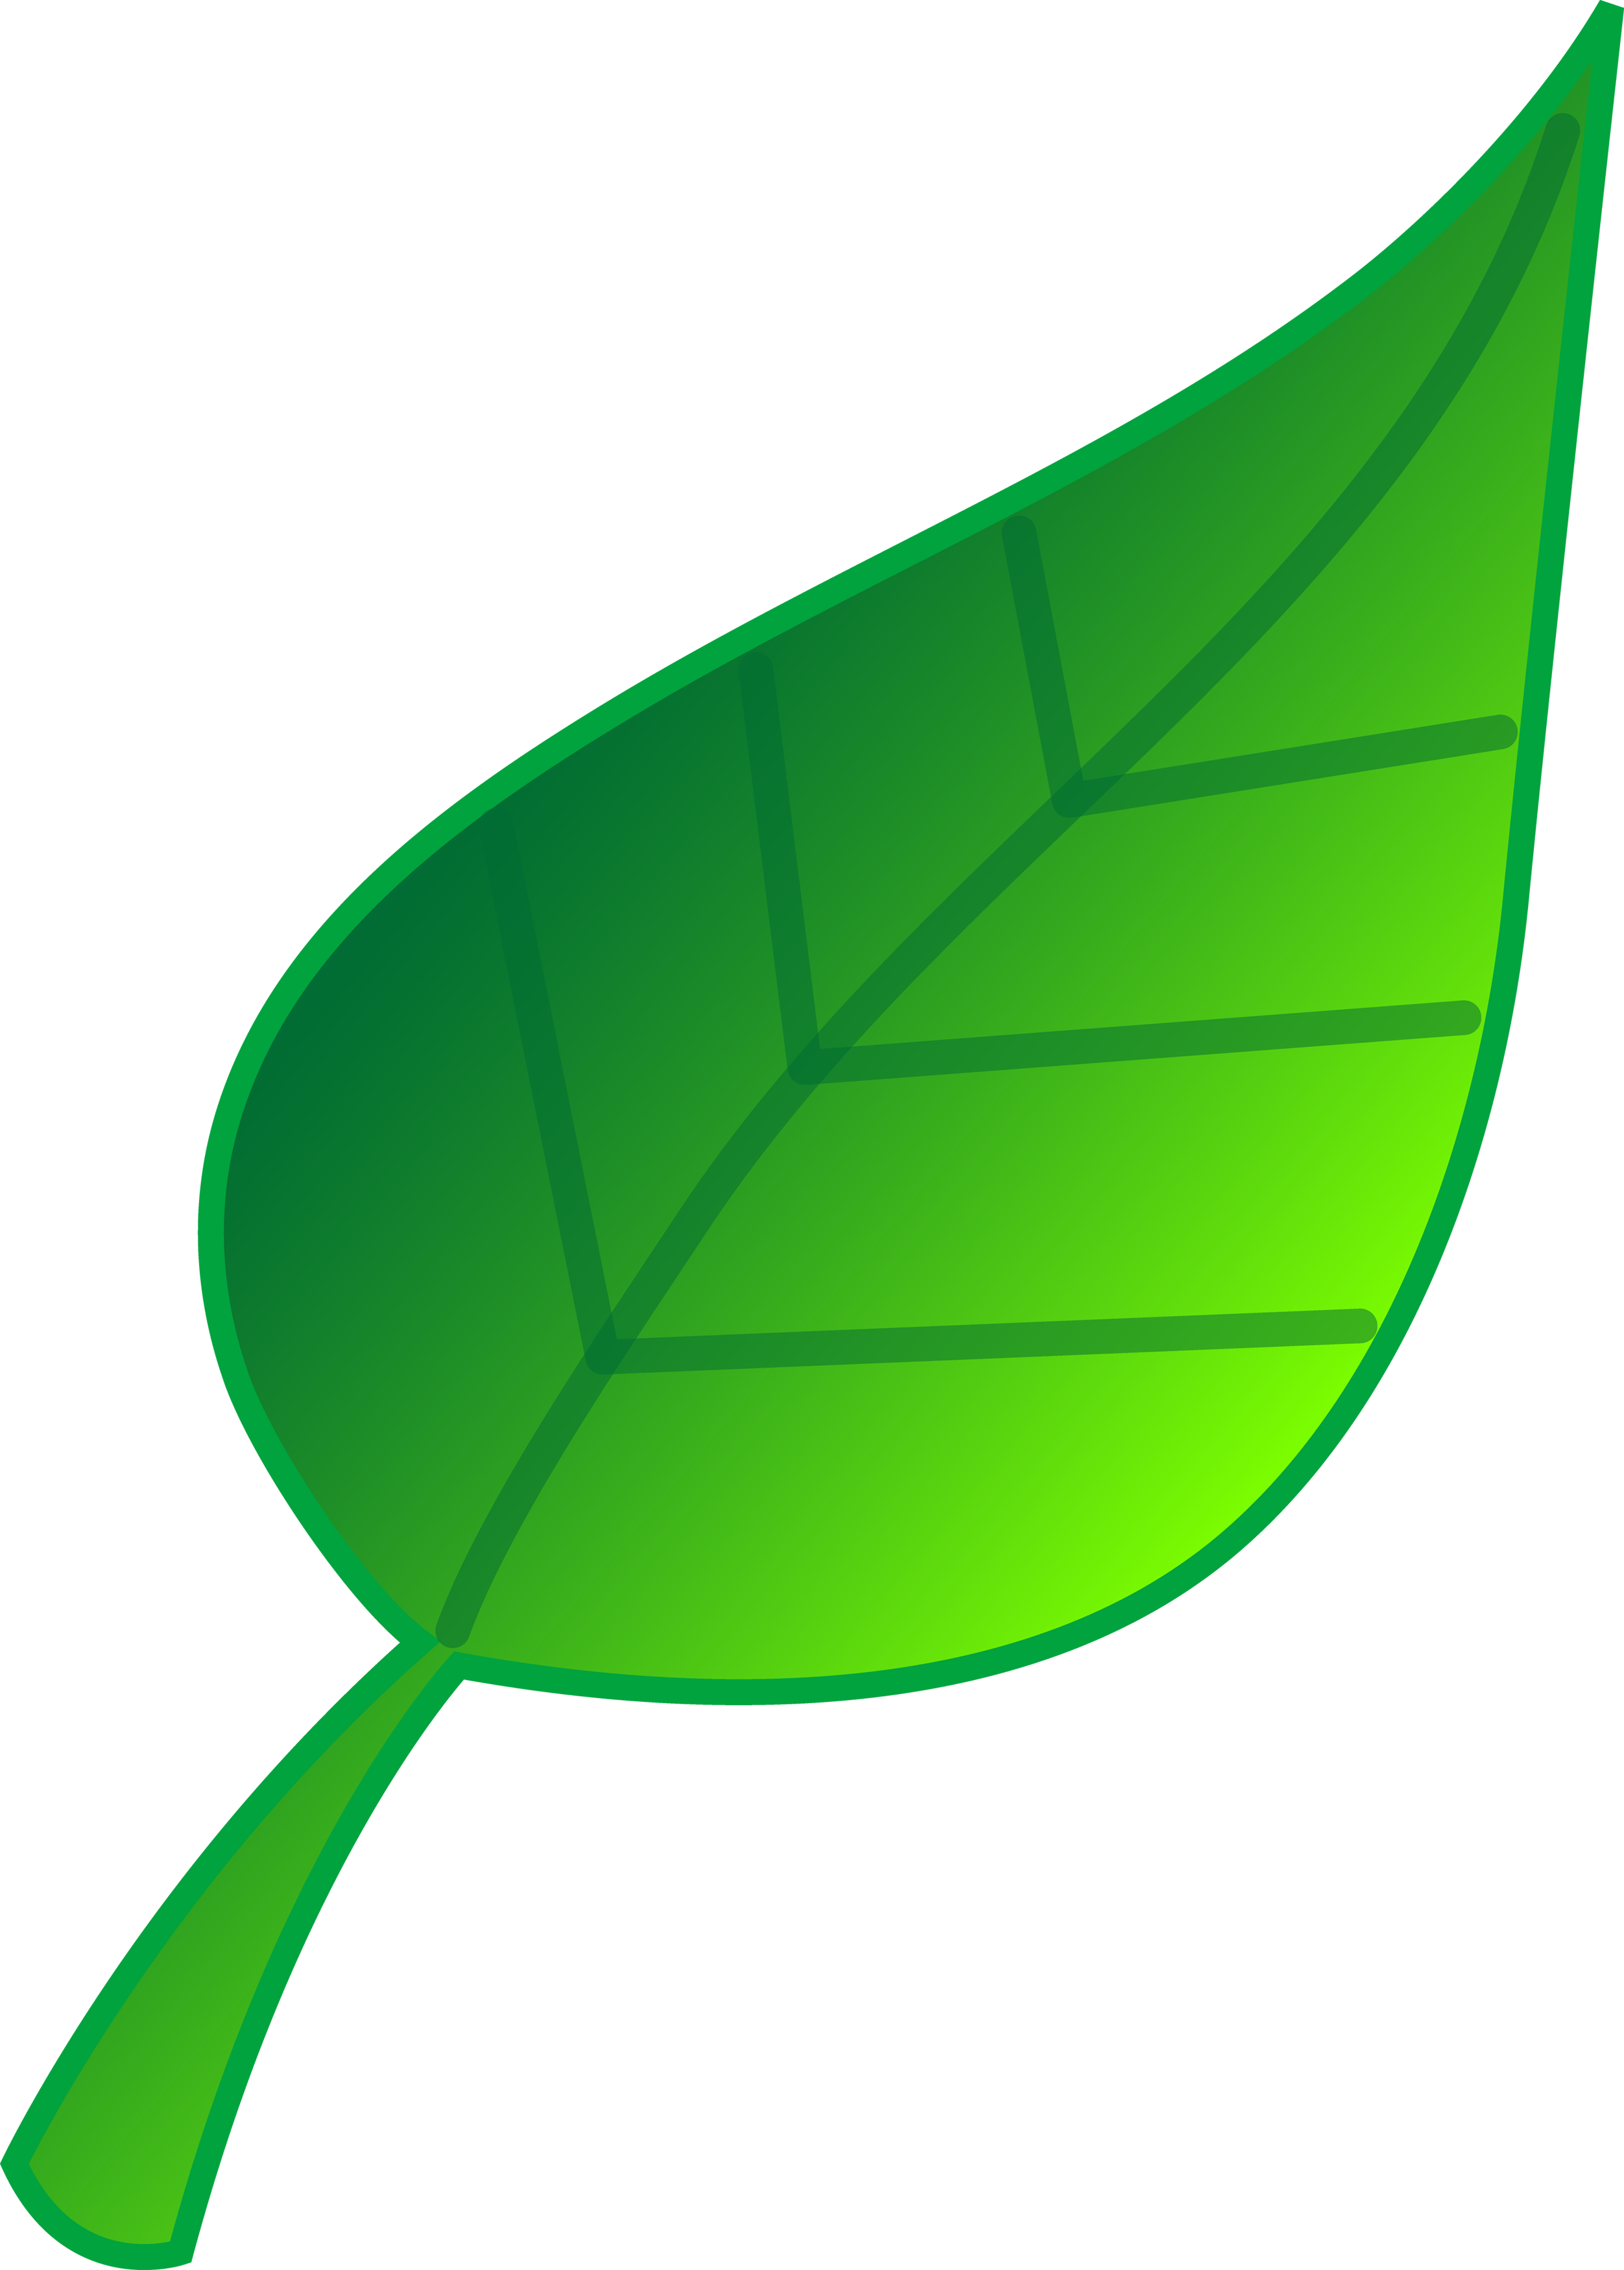 Clipart Leaves-Clipart Leaves-3